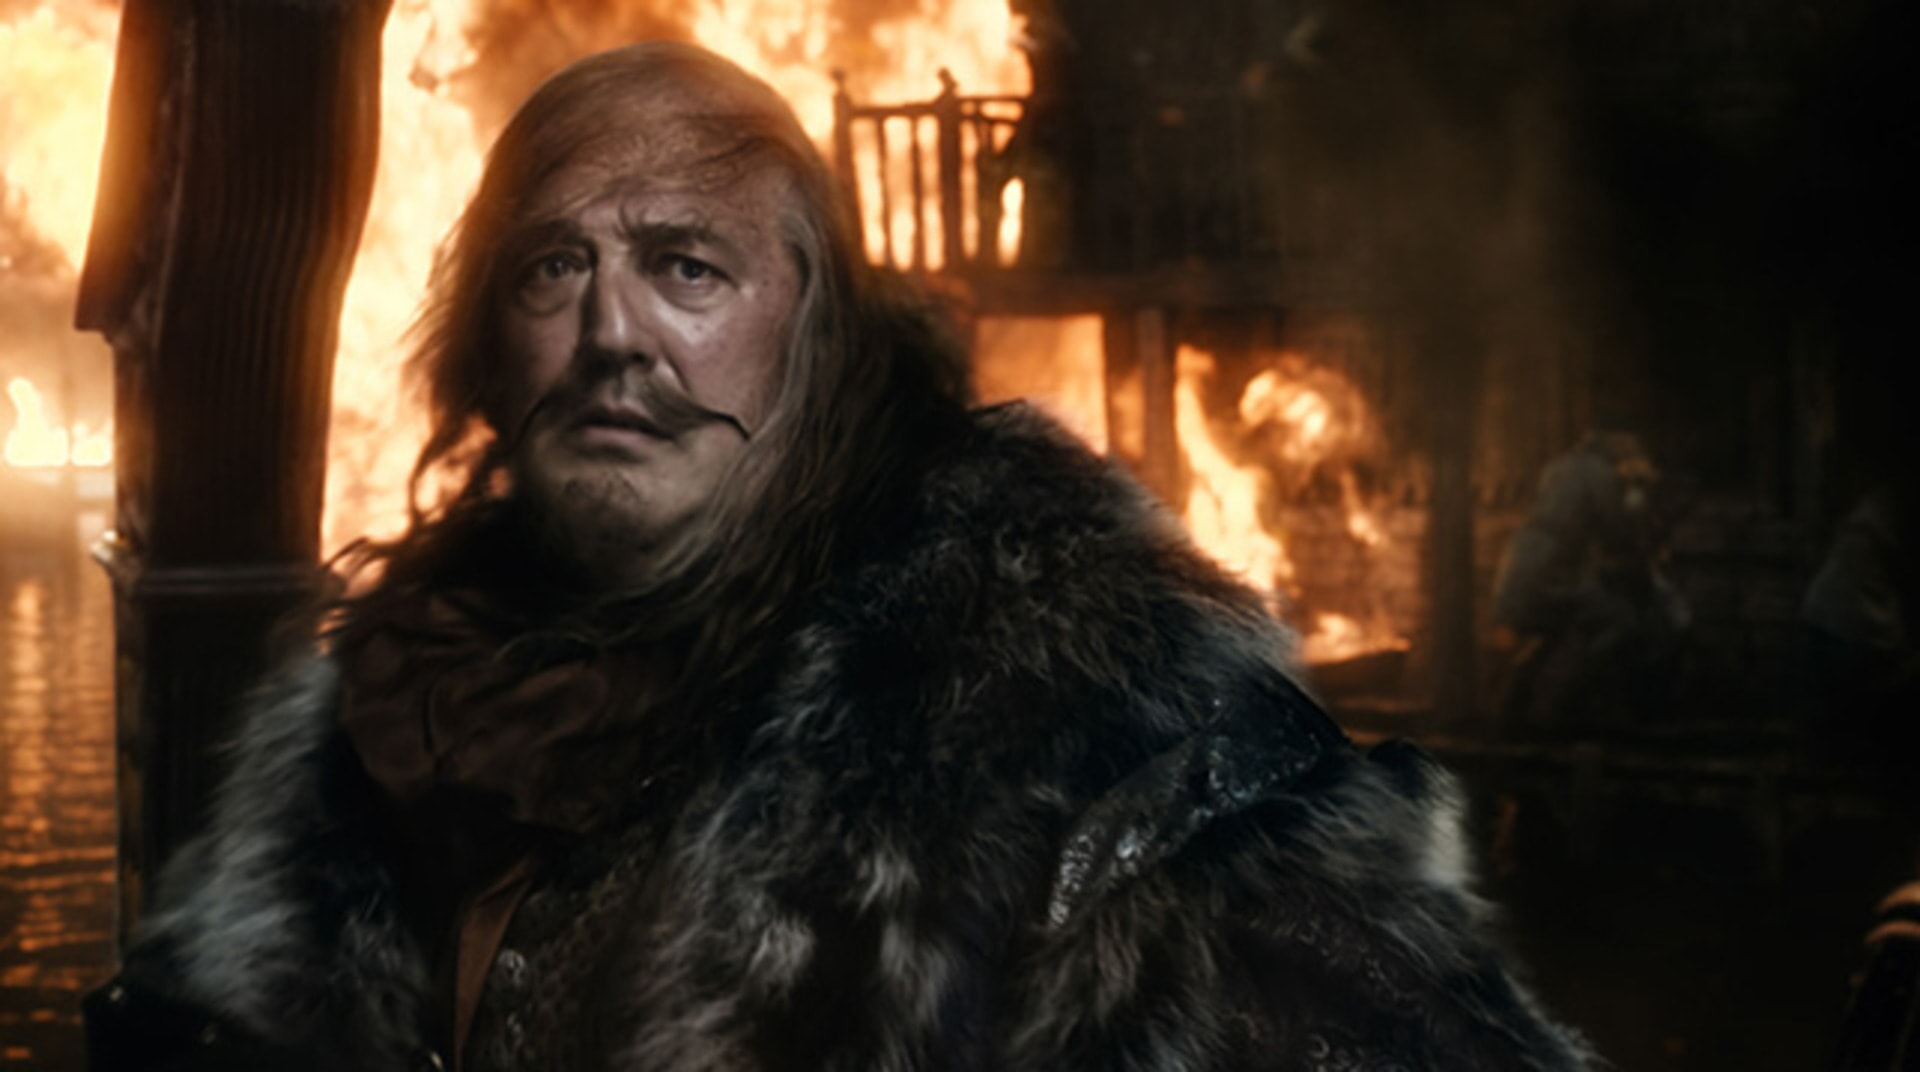 The Hobbit: The Battle of the Five Armies - Image 22